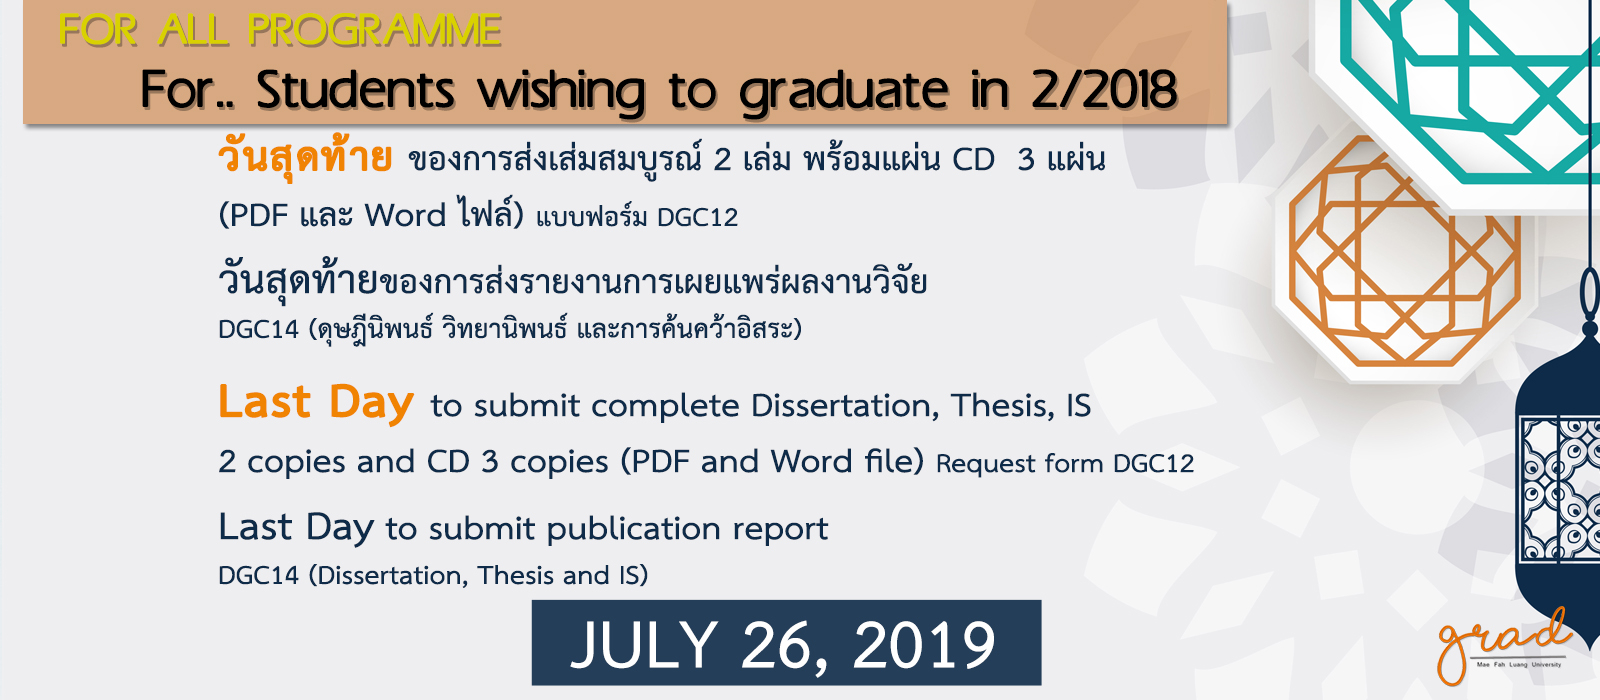 Last day to submit complete Thesis 2/2018